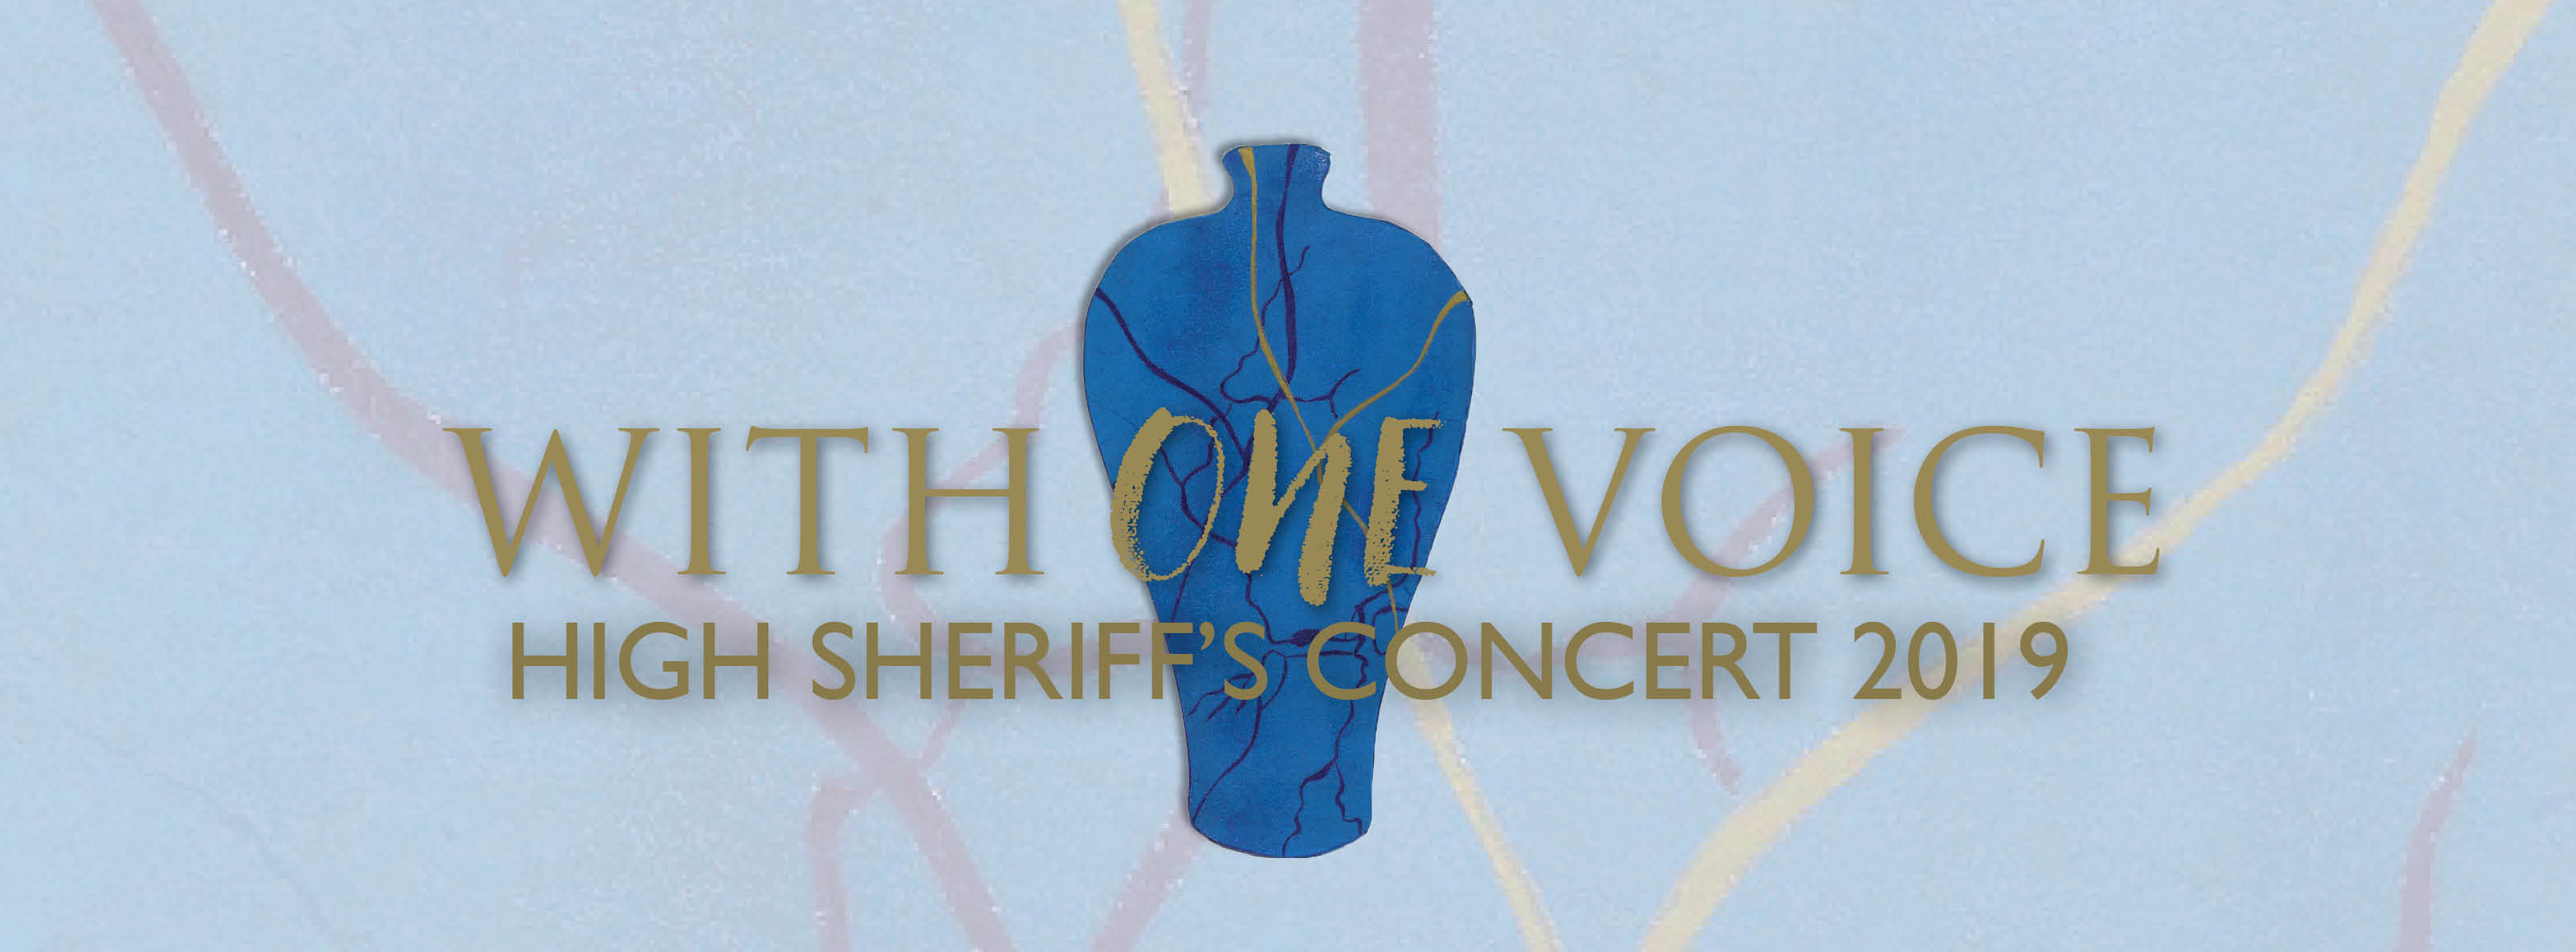 High Sheriff Concert 2019